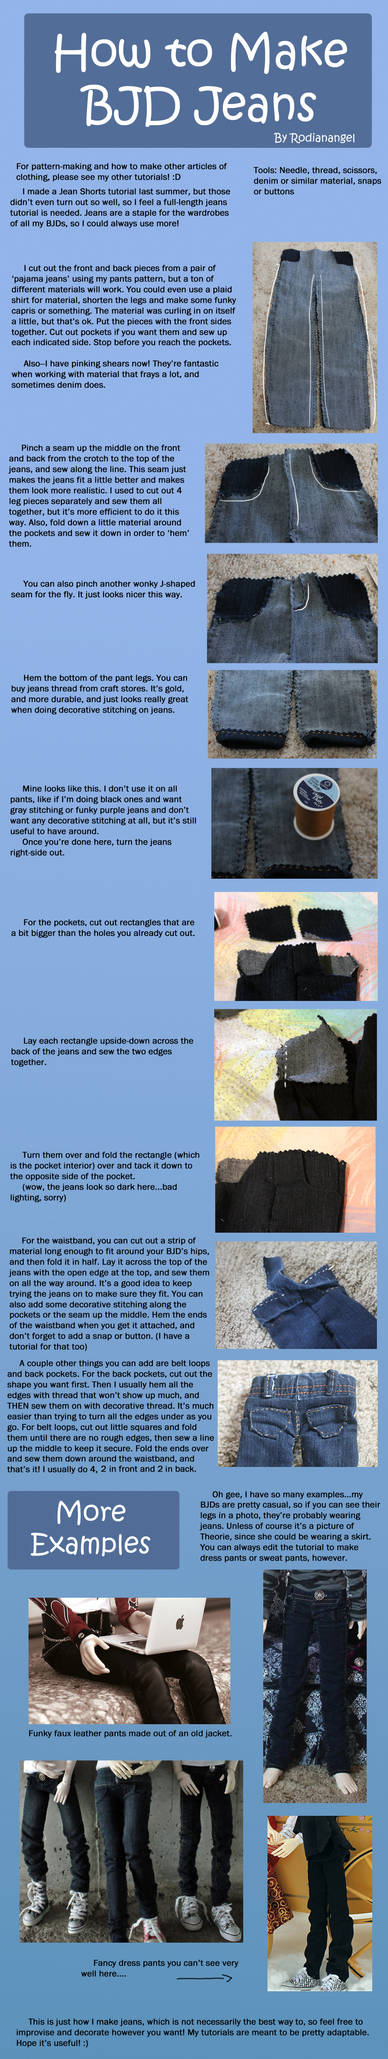 How to Make BJD Jeans